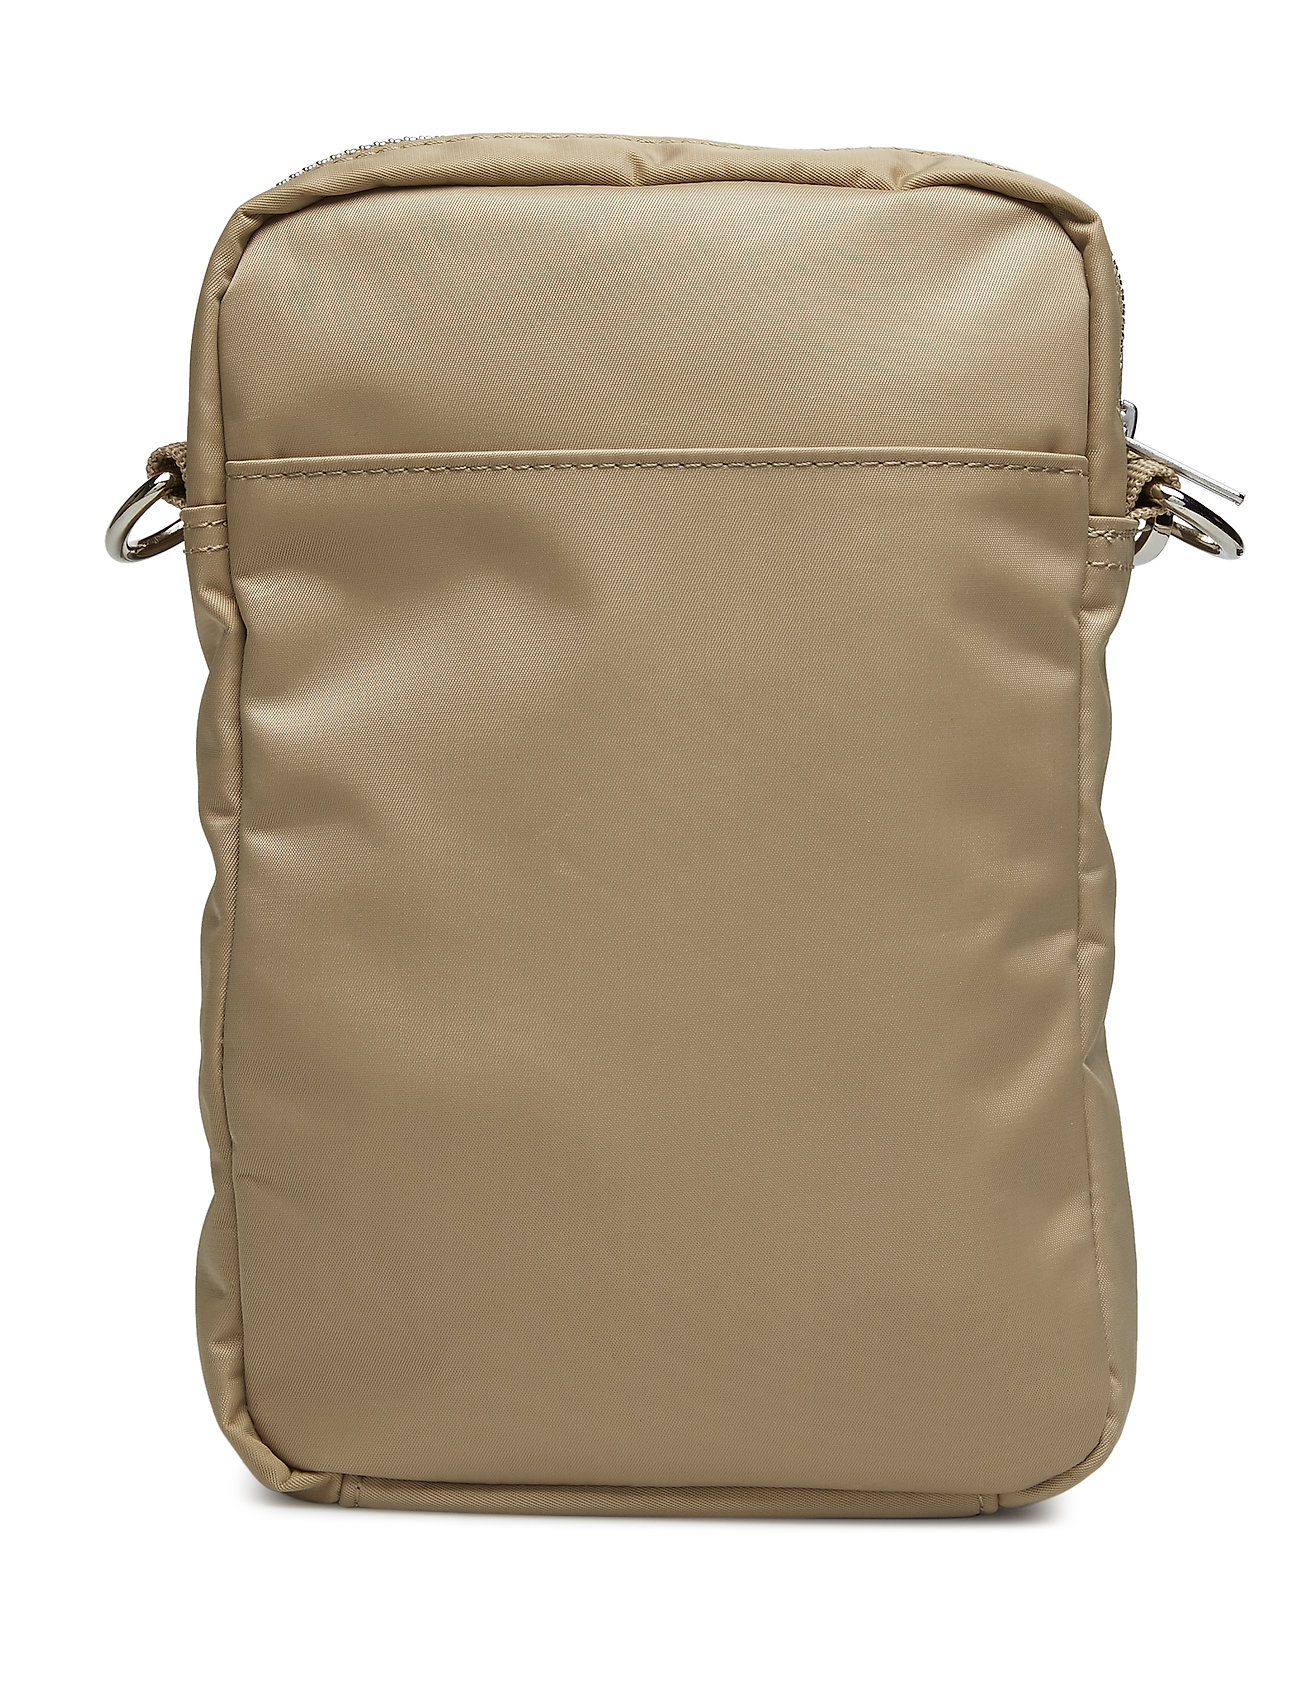 Rena Shoulderbag Skuldertaske Beige WOOD WOOD